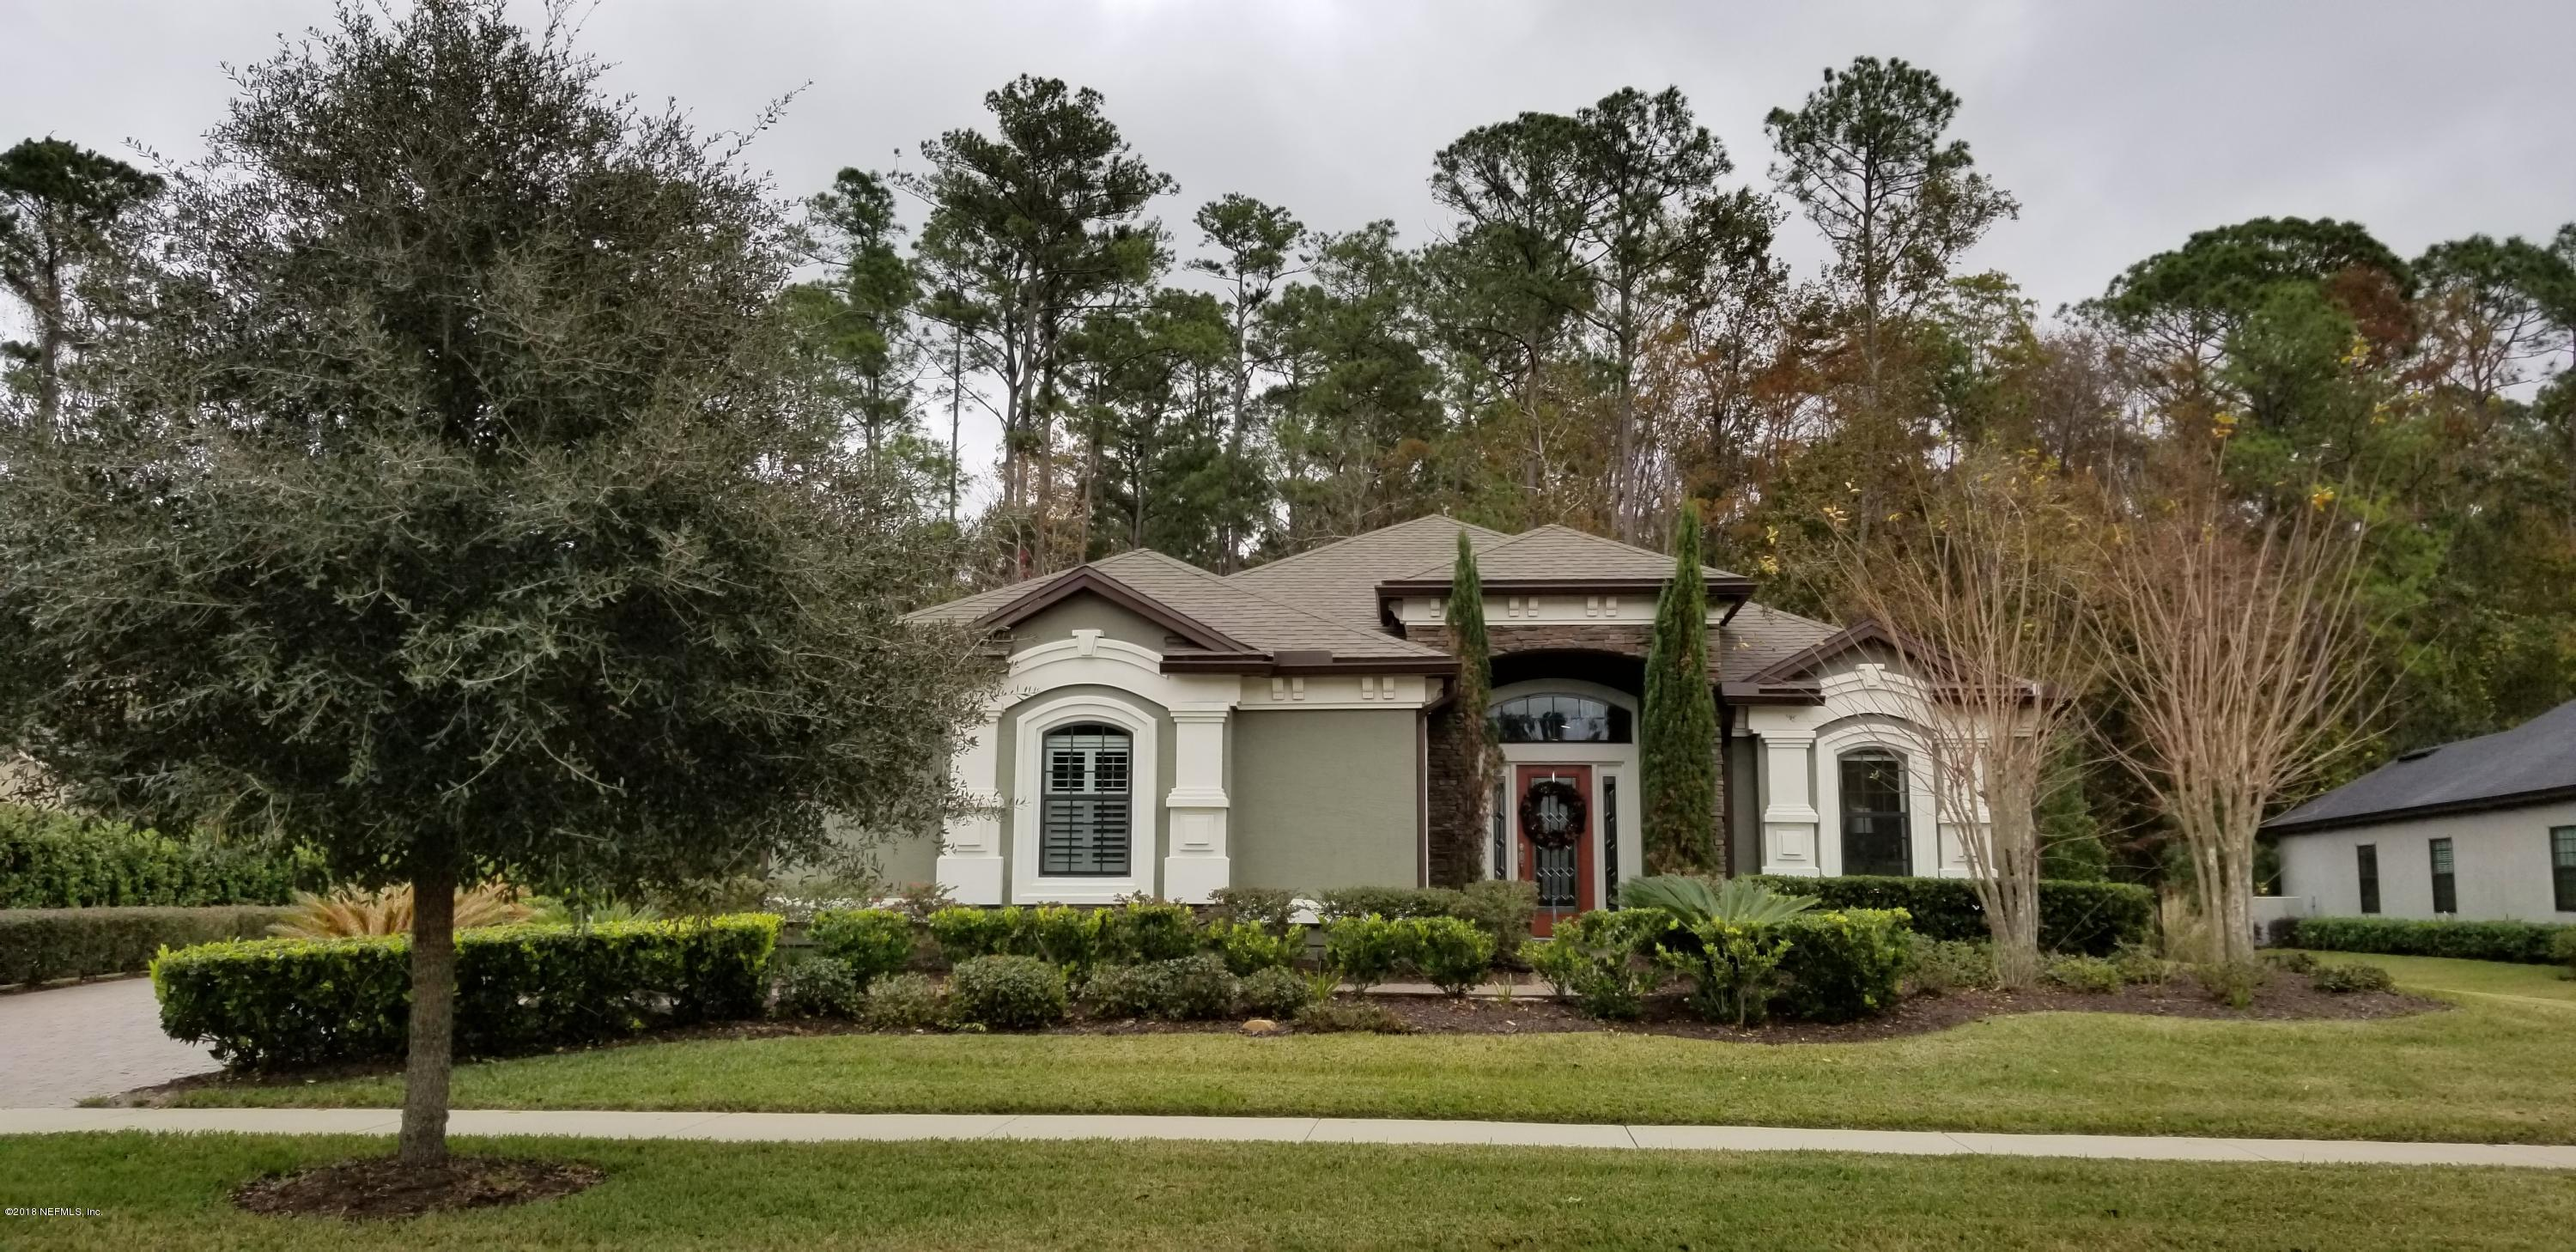 2080 CROWN, ST AUGUSTINE, FLORIDA 32092, 4 Bedrooms Bedrooms, ,3 BathroomsBathrooms,Residential - single family,For sale,CROWN,970421